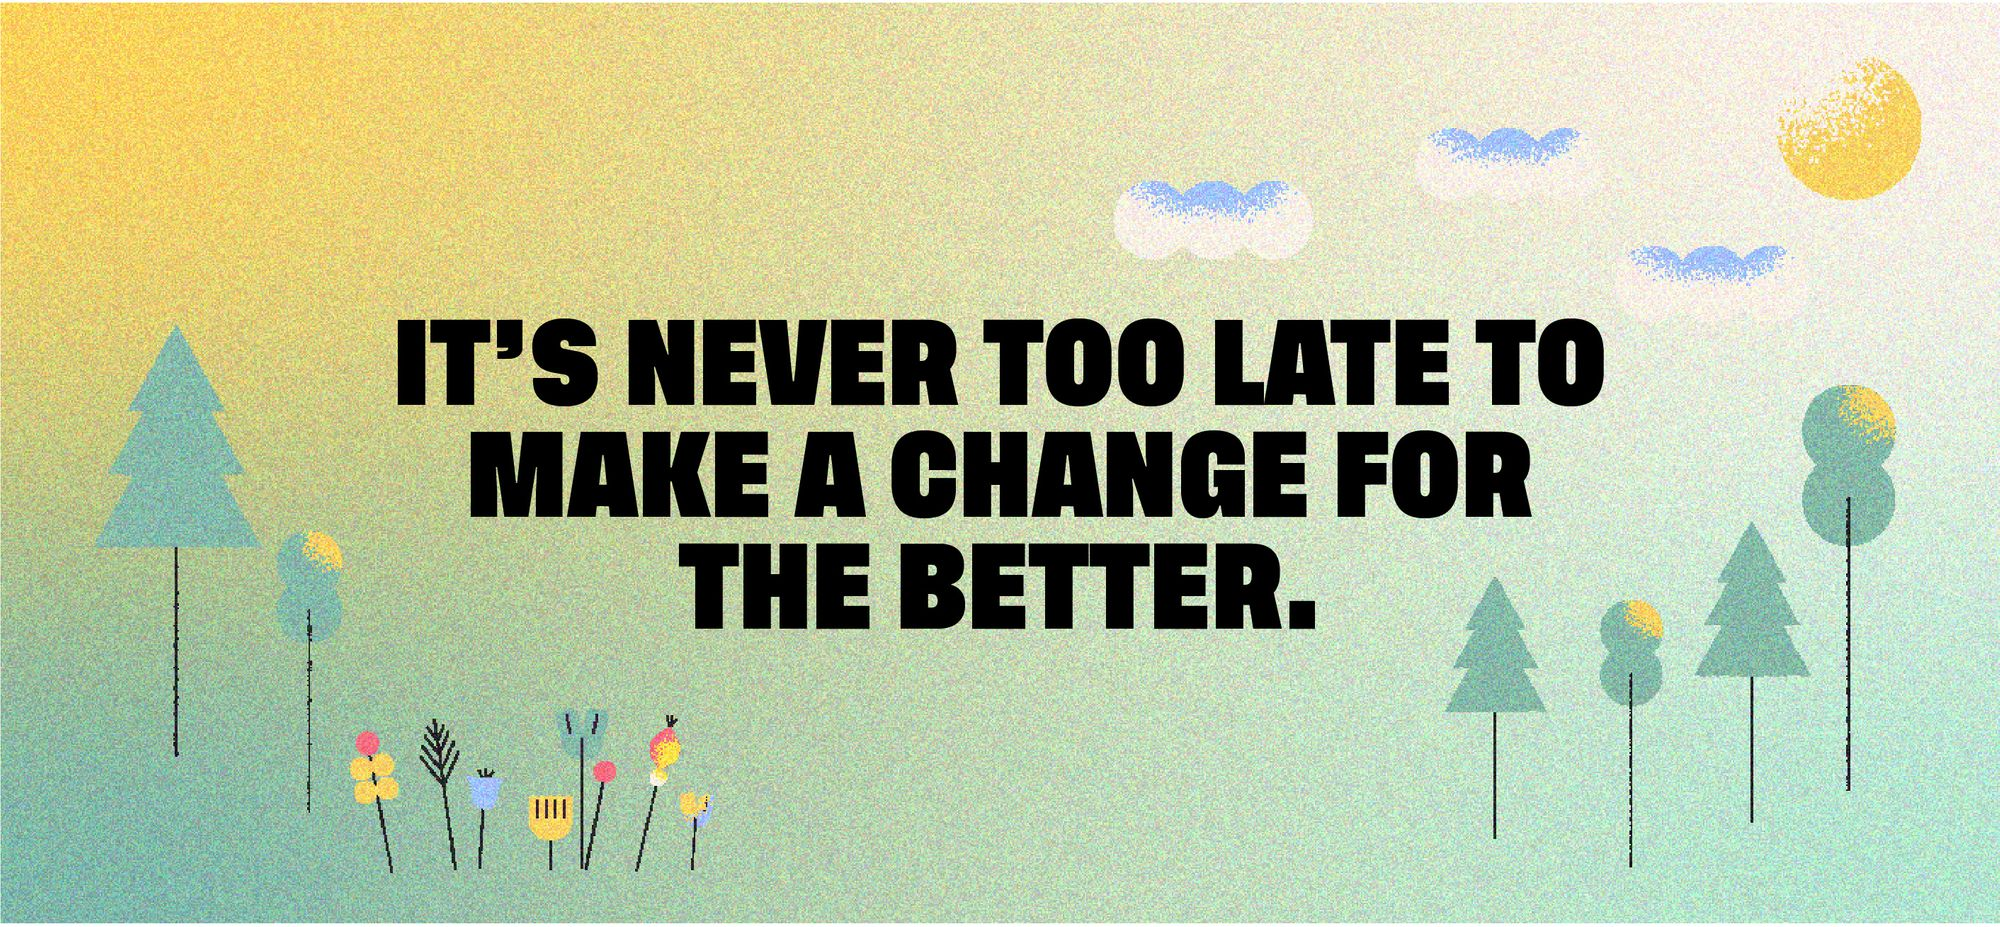 It's never too late to make a change for the better.